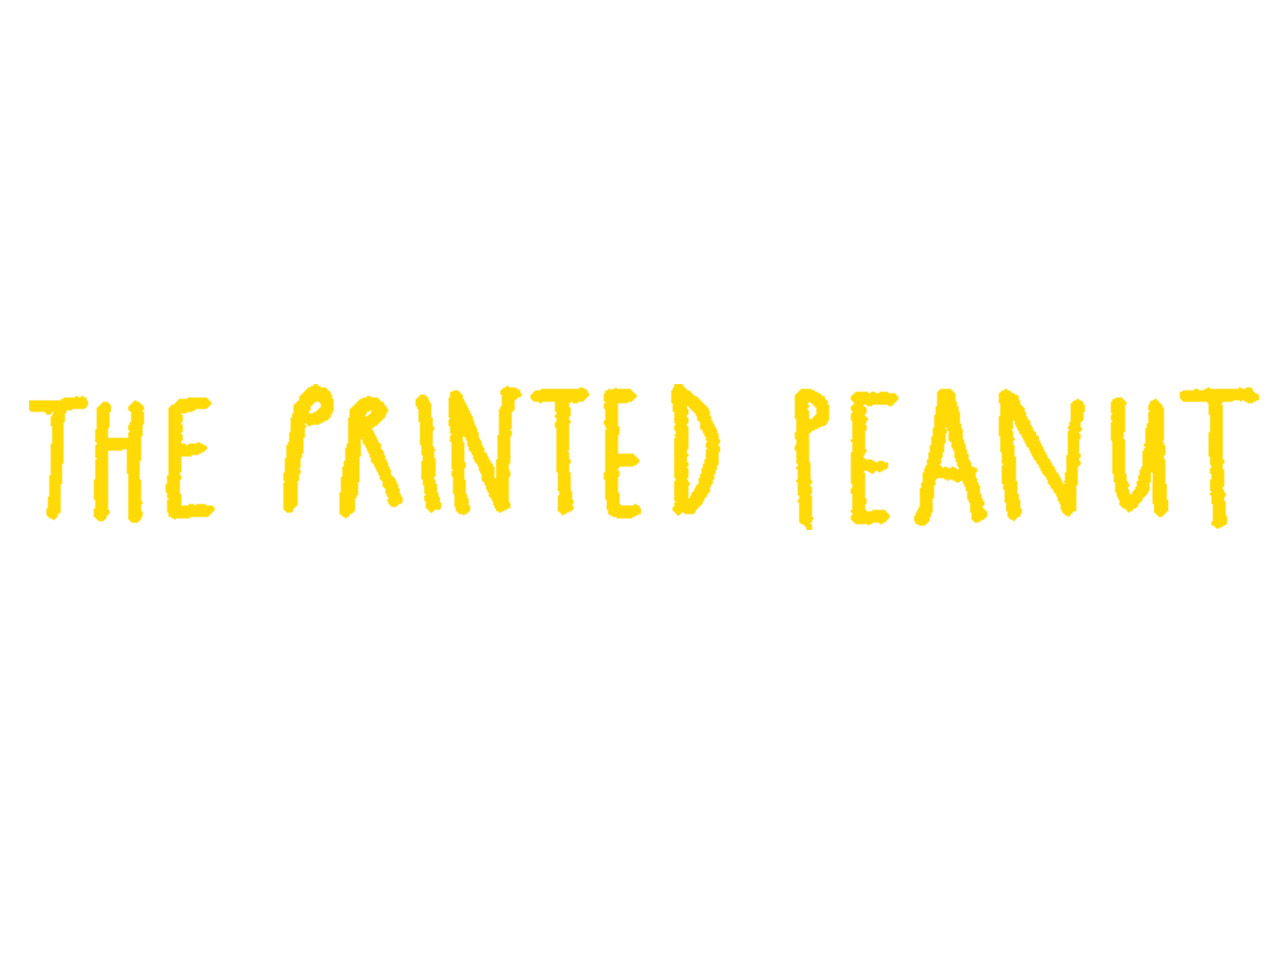 The Printed Peanut